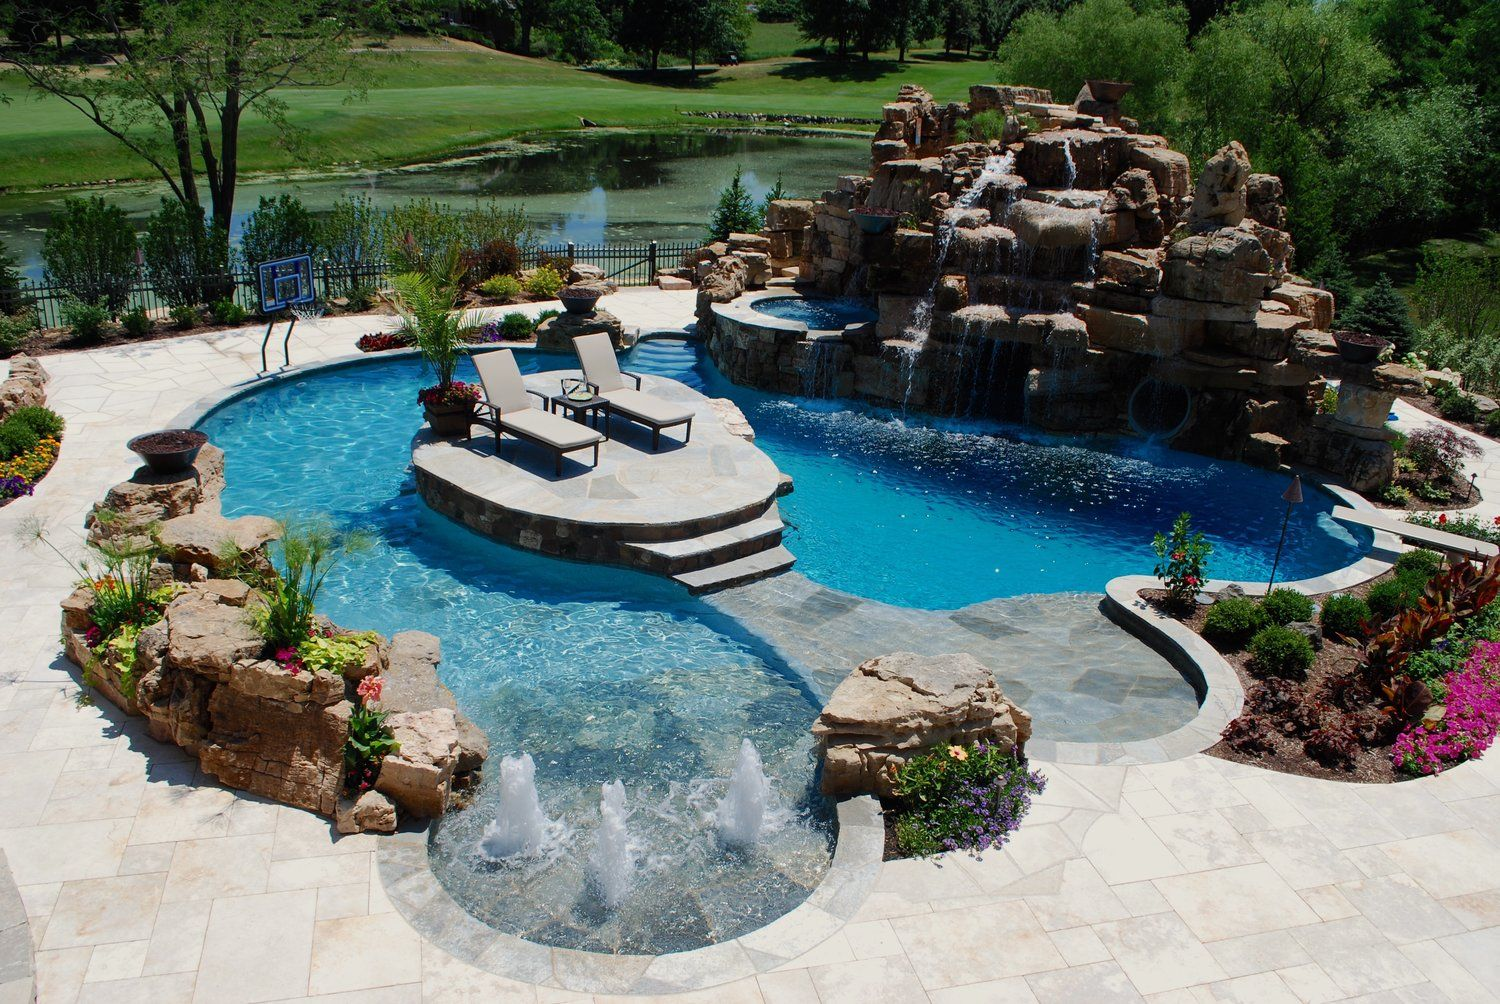 Custom Pool With Island Slide Rock Mountain Diving Board Hot Tub Grotto By Southampton Builders Llc Diving Board Custom Pools Pool Houses